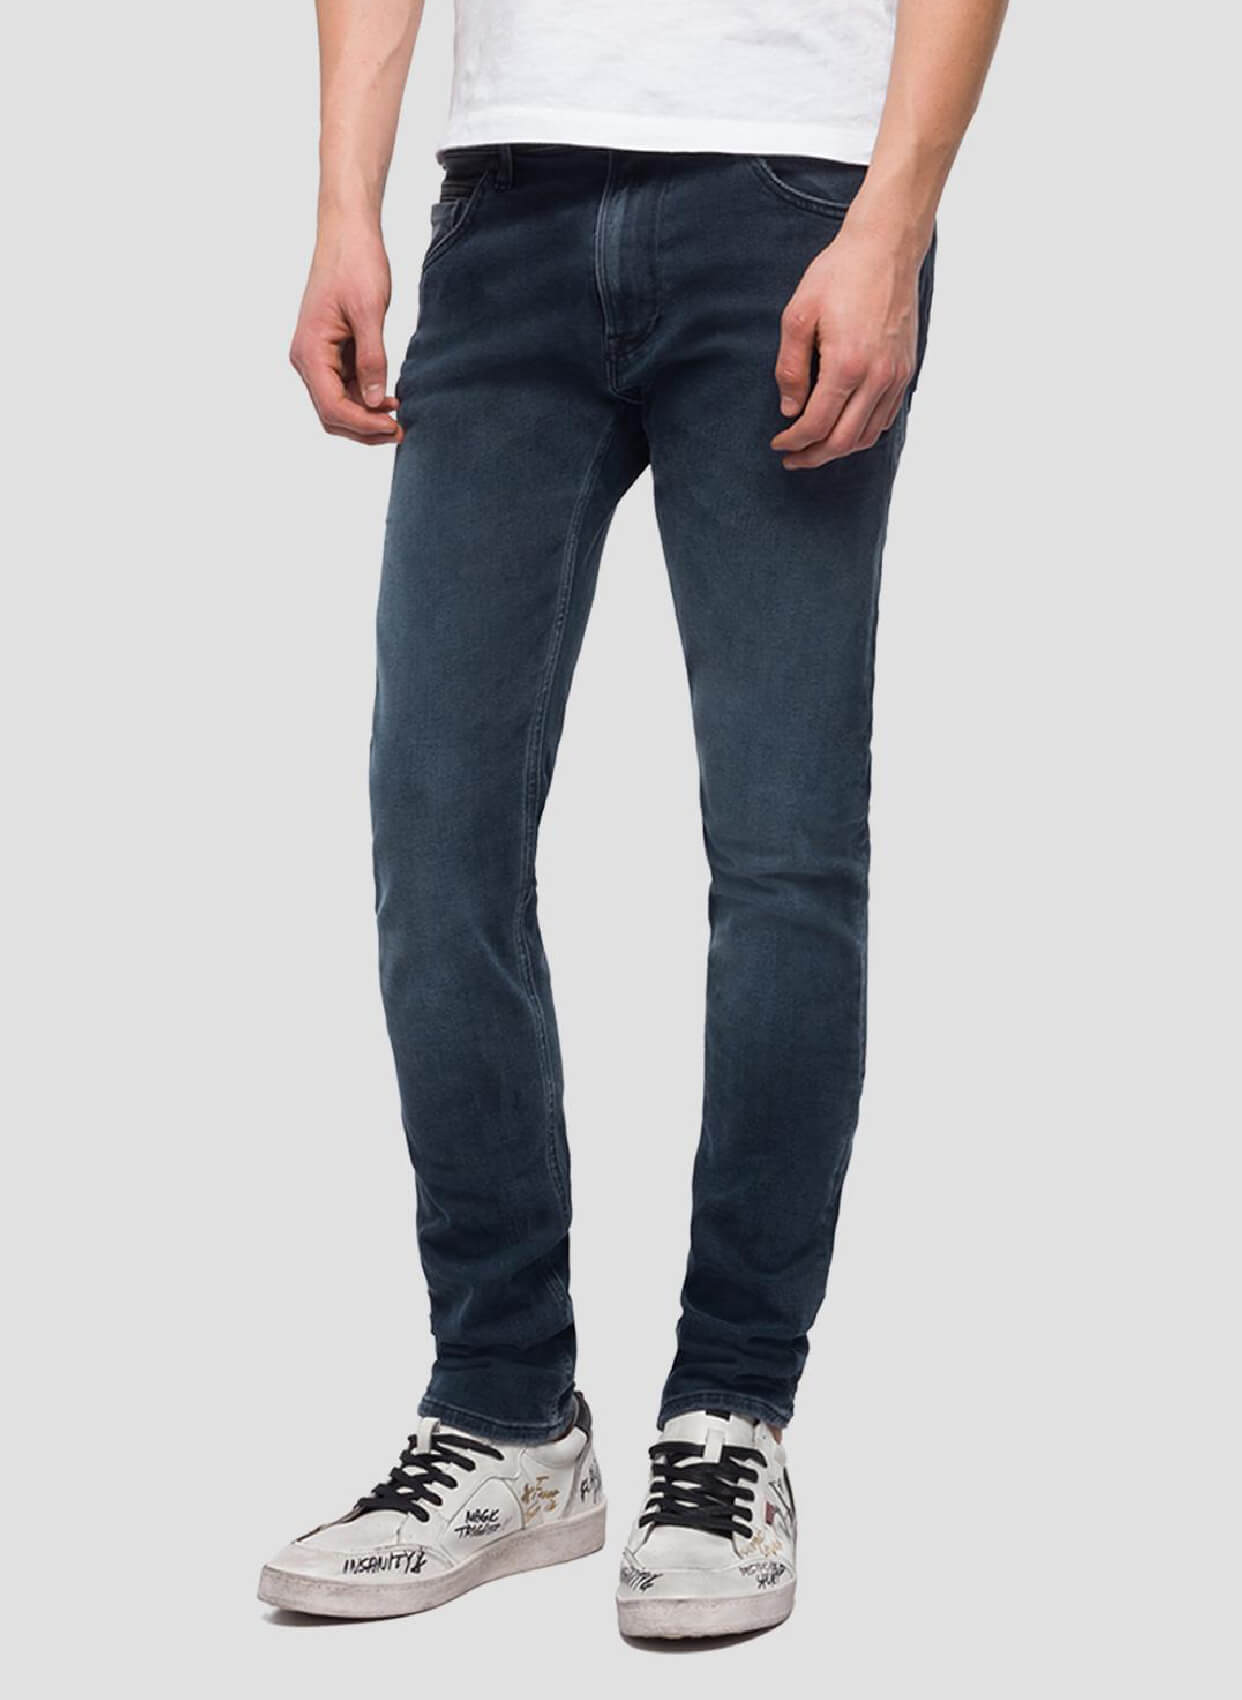 c8f08967844 REPLAY JEANS – Libas Trendy Fashion Store